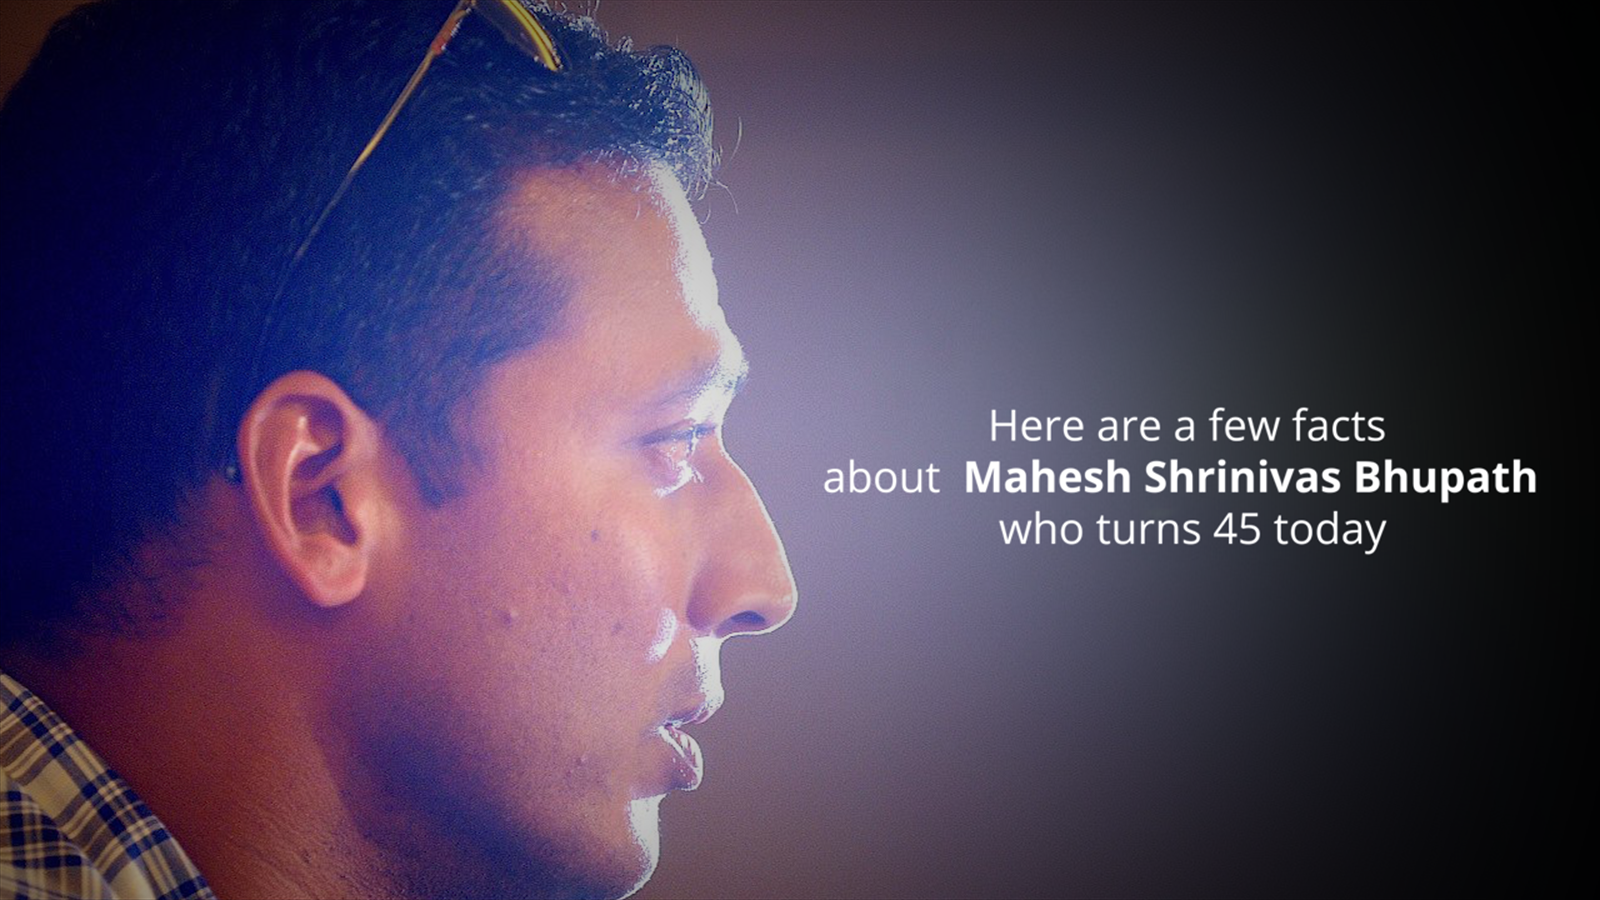 here-are-a-few-facts-about-mahesh-shrinivas-bhupathi-who-turns-45-today